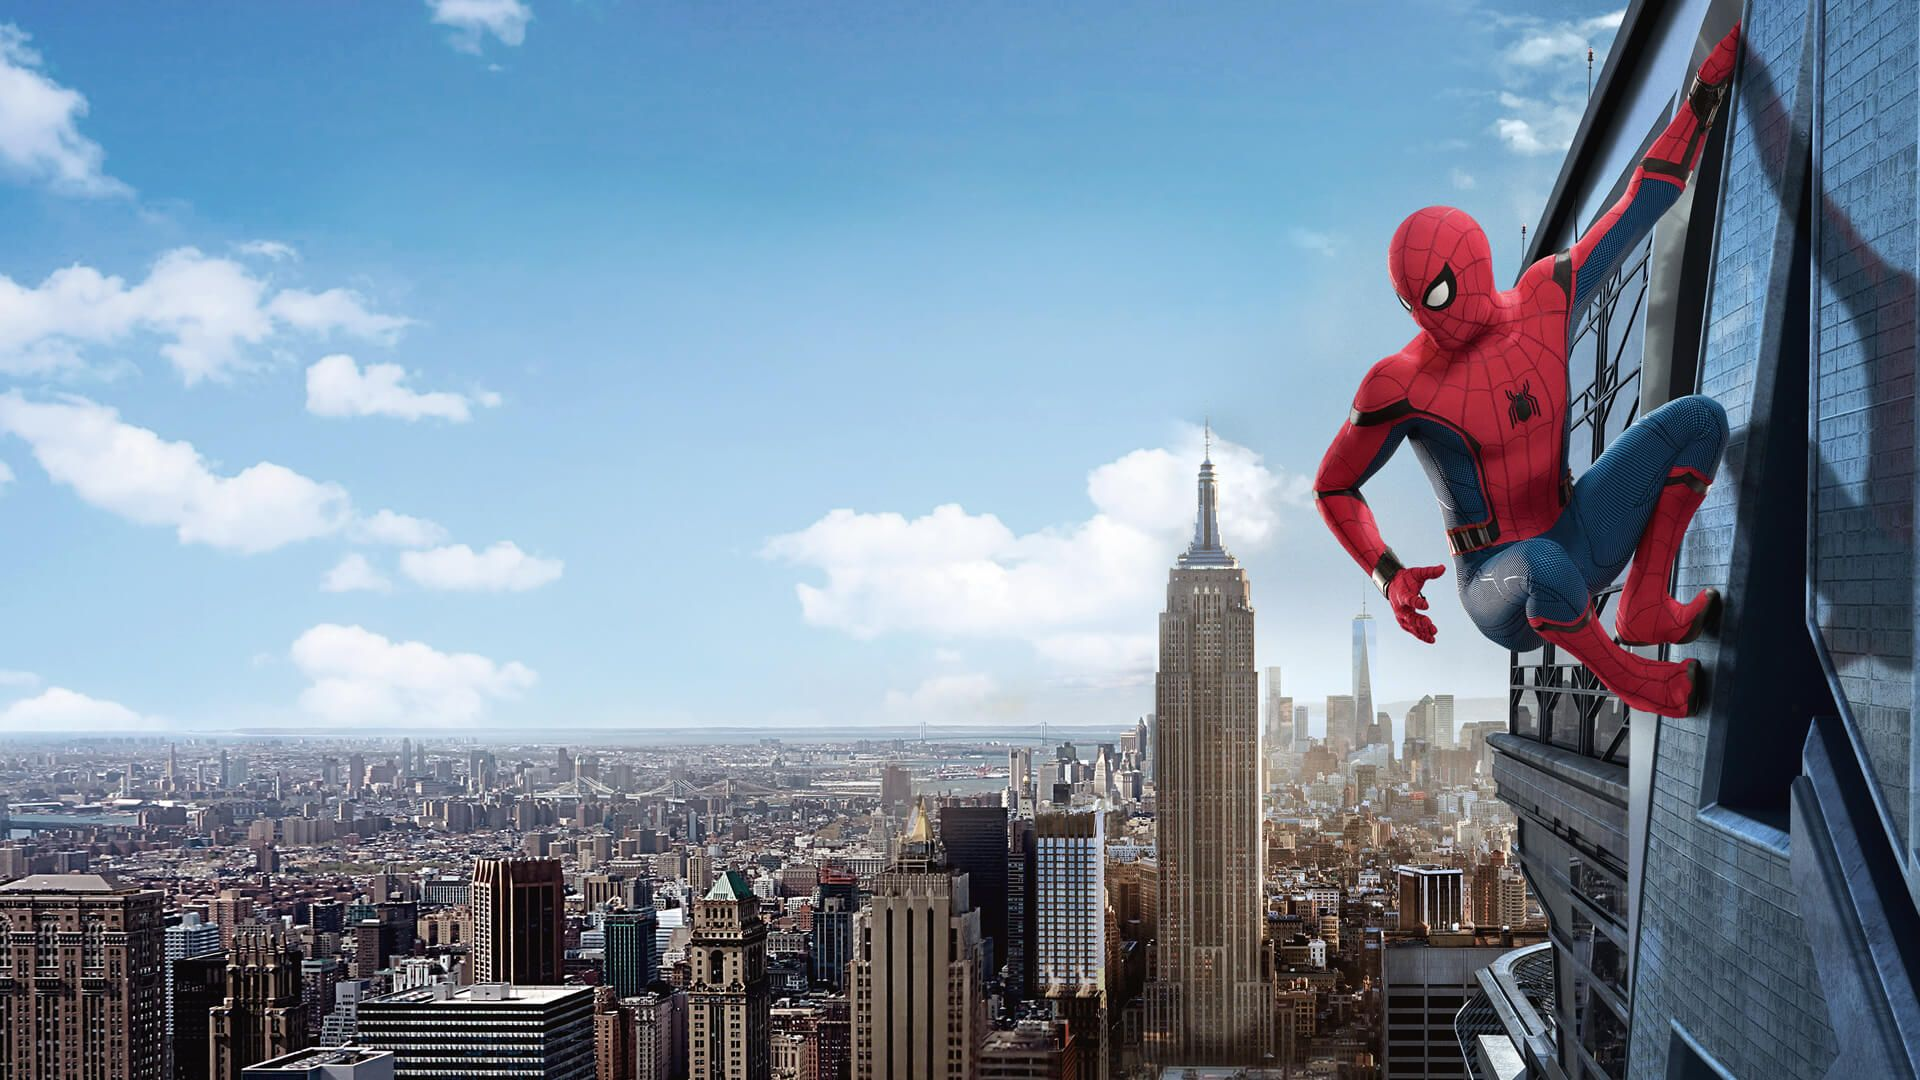 Spiderman Laptop Wallpaper Posted By John Sellers